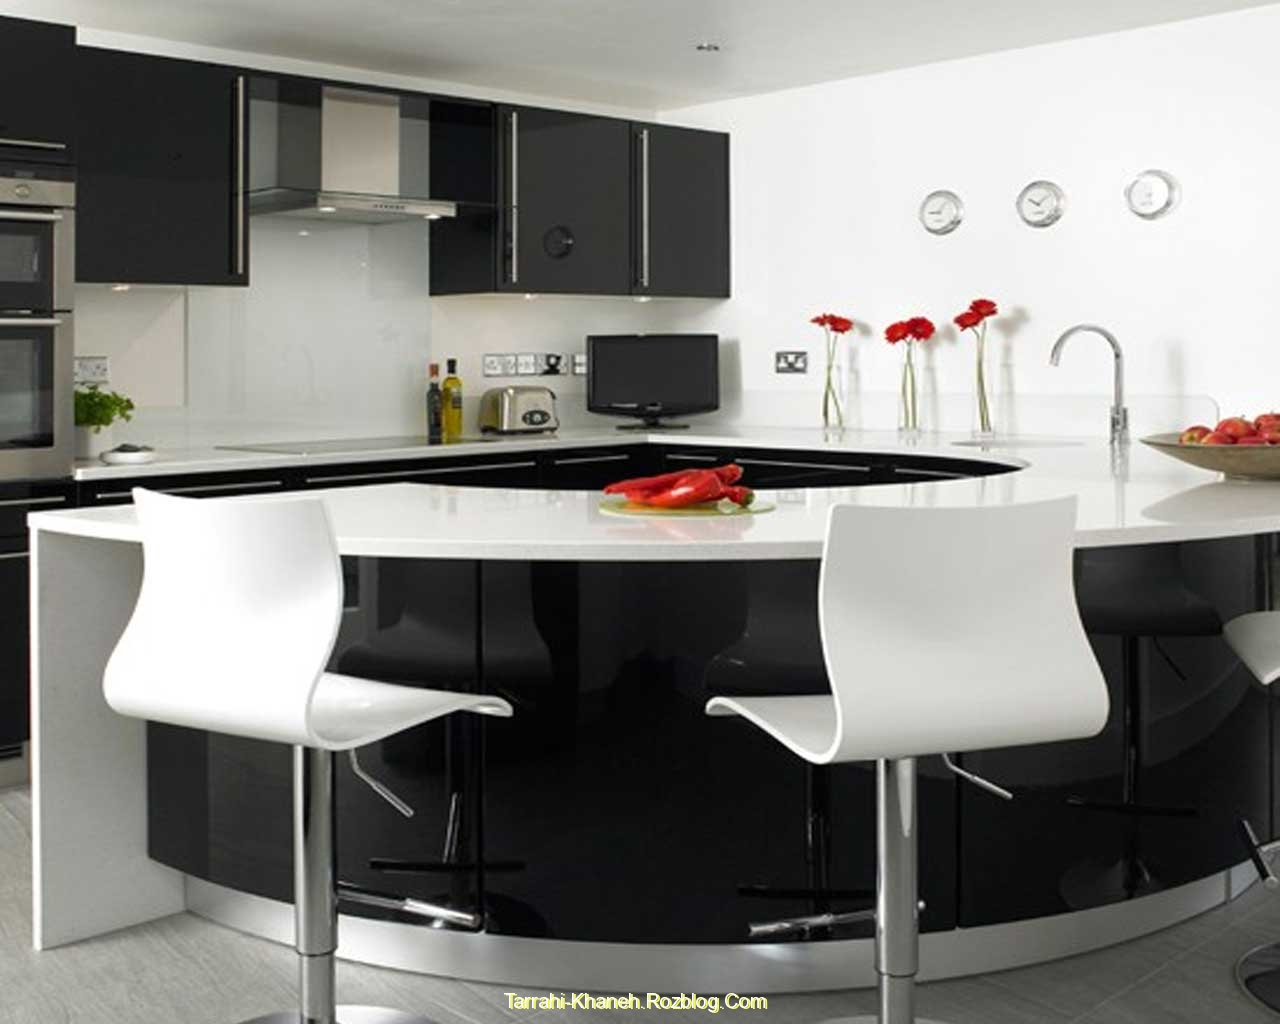 http://rozup.ir/up/tarrahi-khaneh/Pictures/Kitchen-Designs/minimalist-kitchen/2013-minimalist-kitchen.jpg